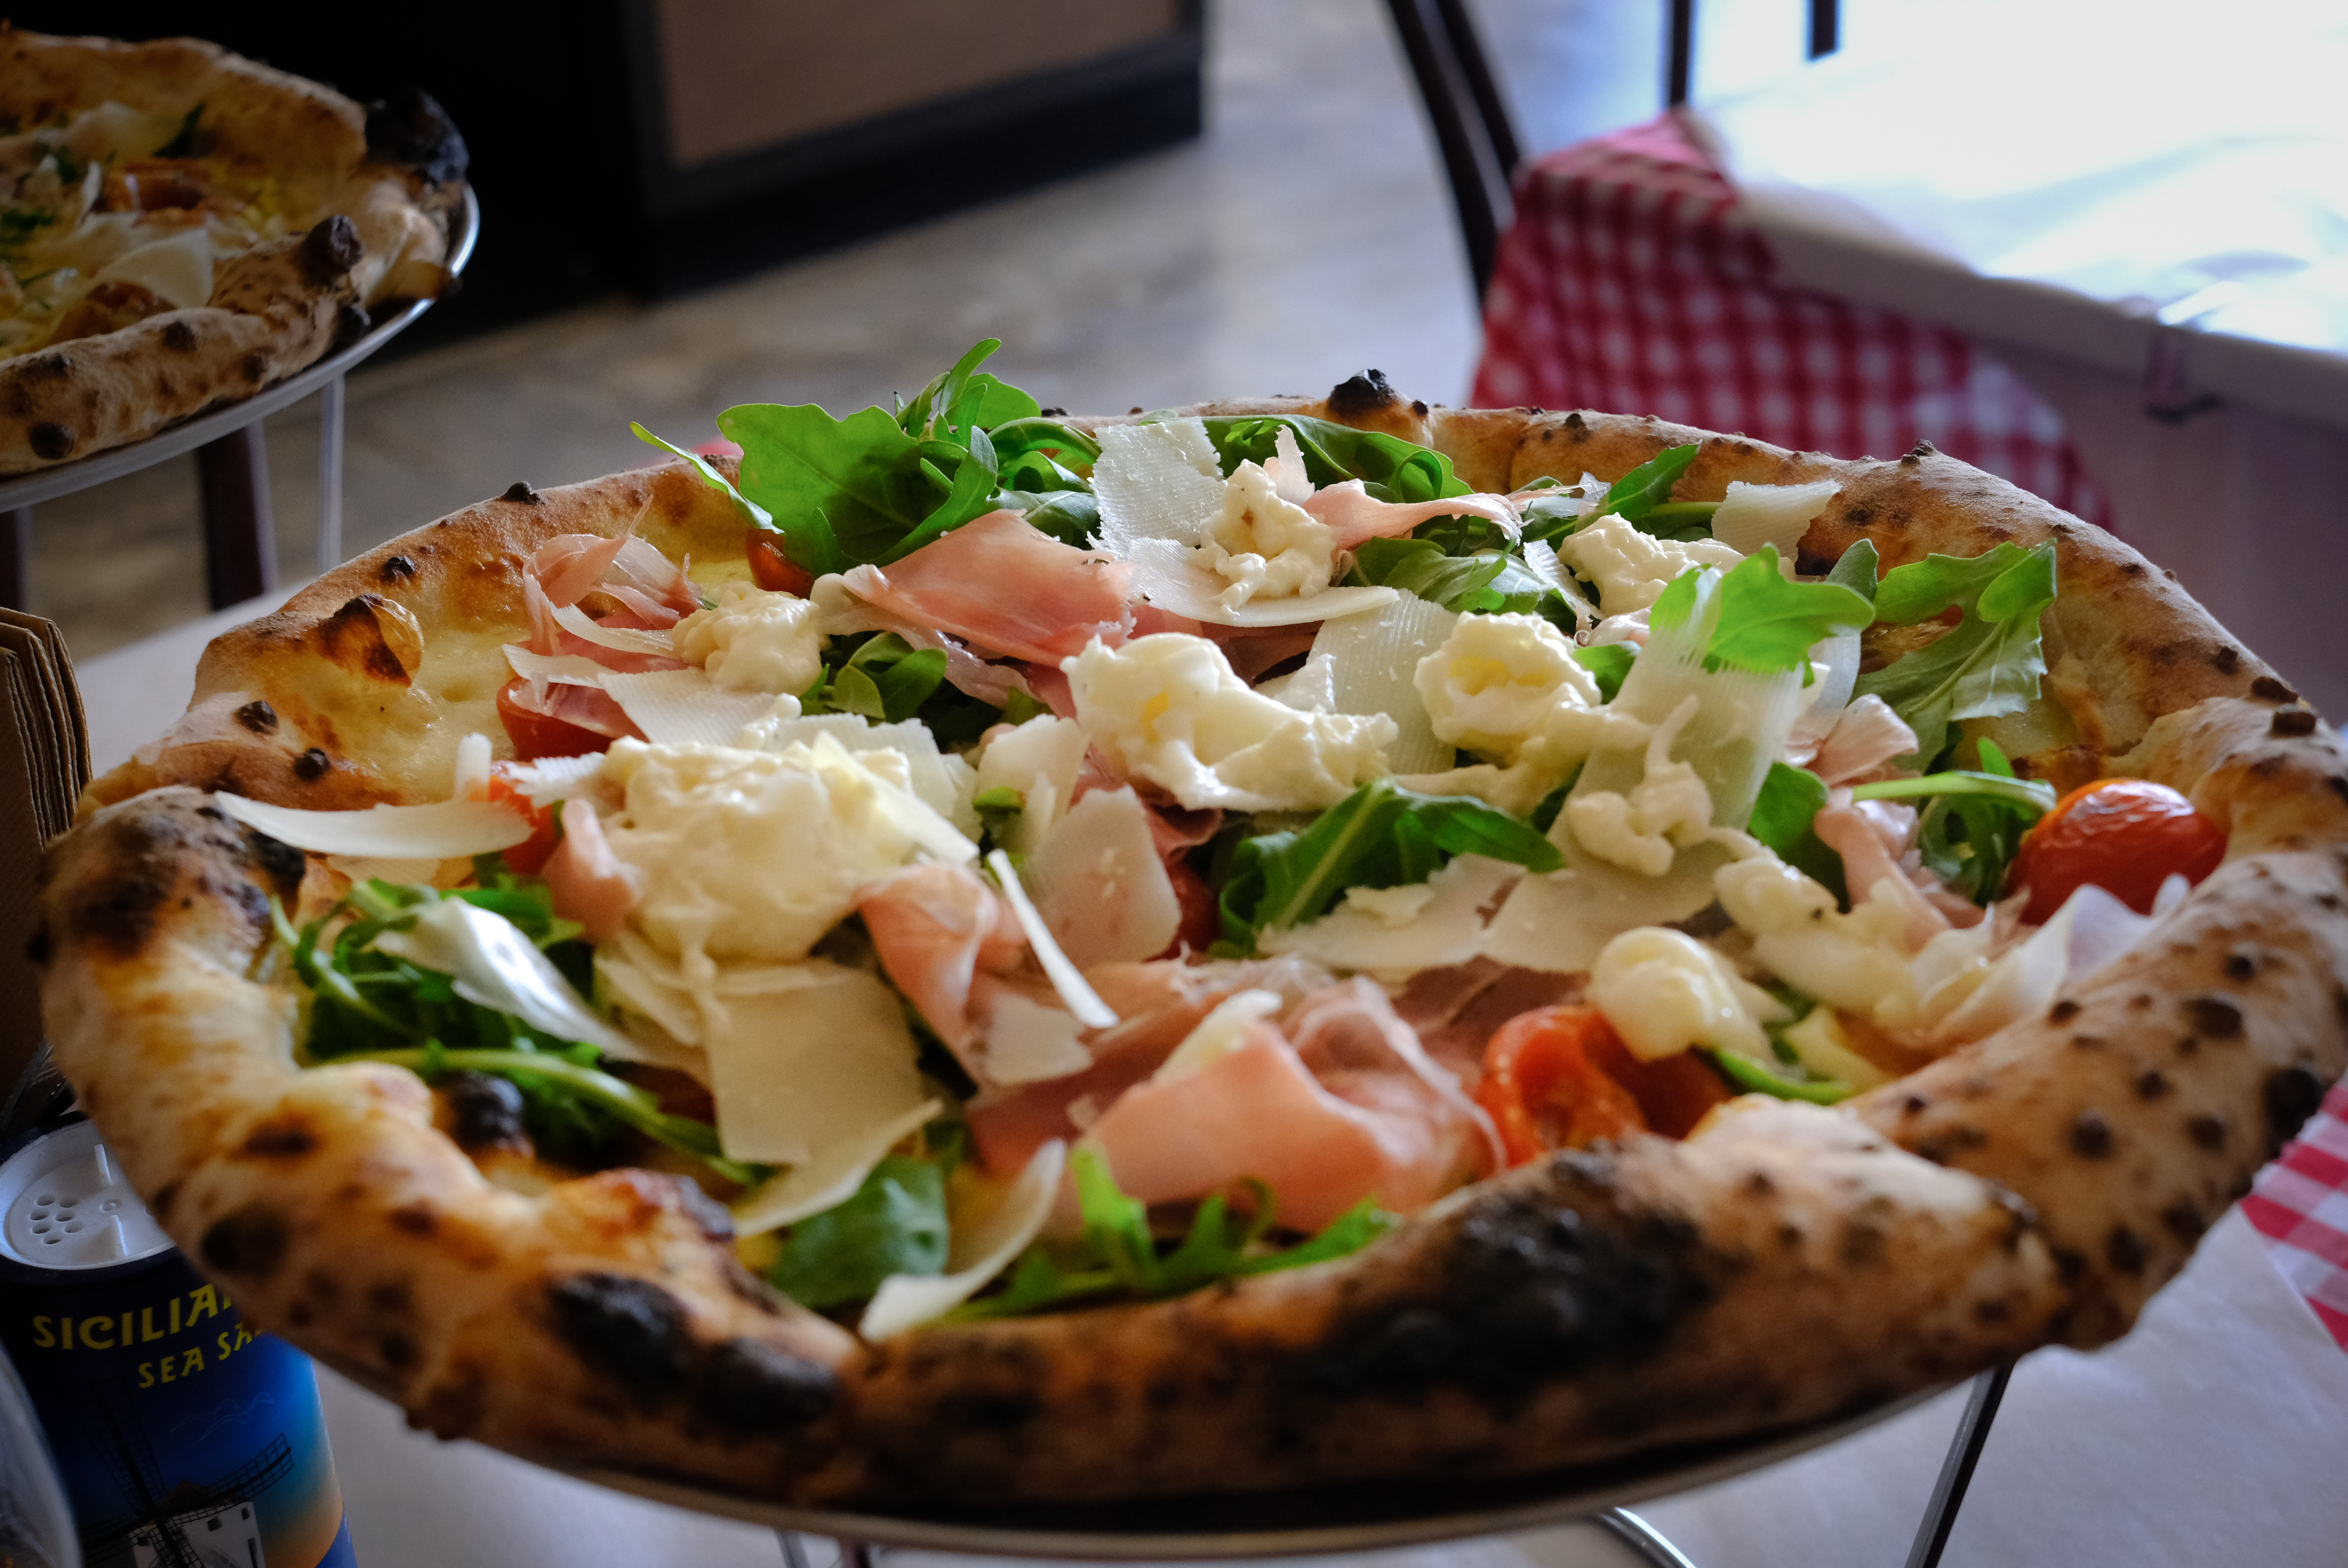 Scorcher reviews: Matteo's Pizza Parlour — 'a throwback to the family-run, charming pizzerias of the 90s'